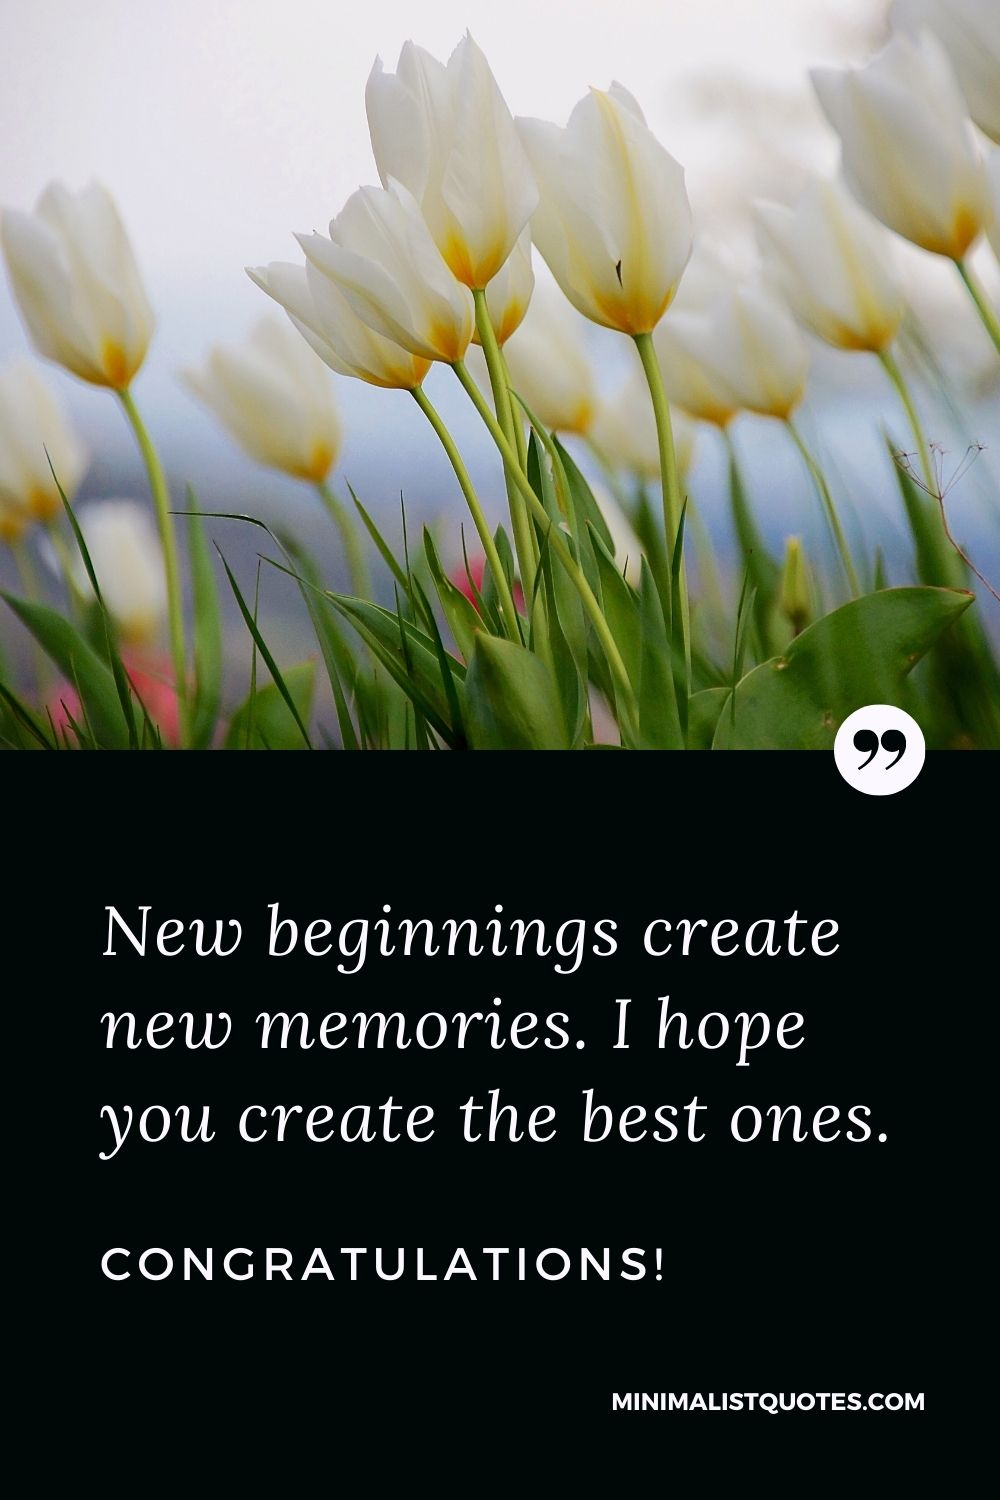 New Home Wish, Quote & Message with Image: New beginnings create new memories. I hope you create the best ones. Congratulations!